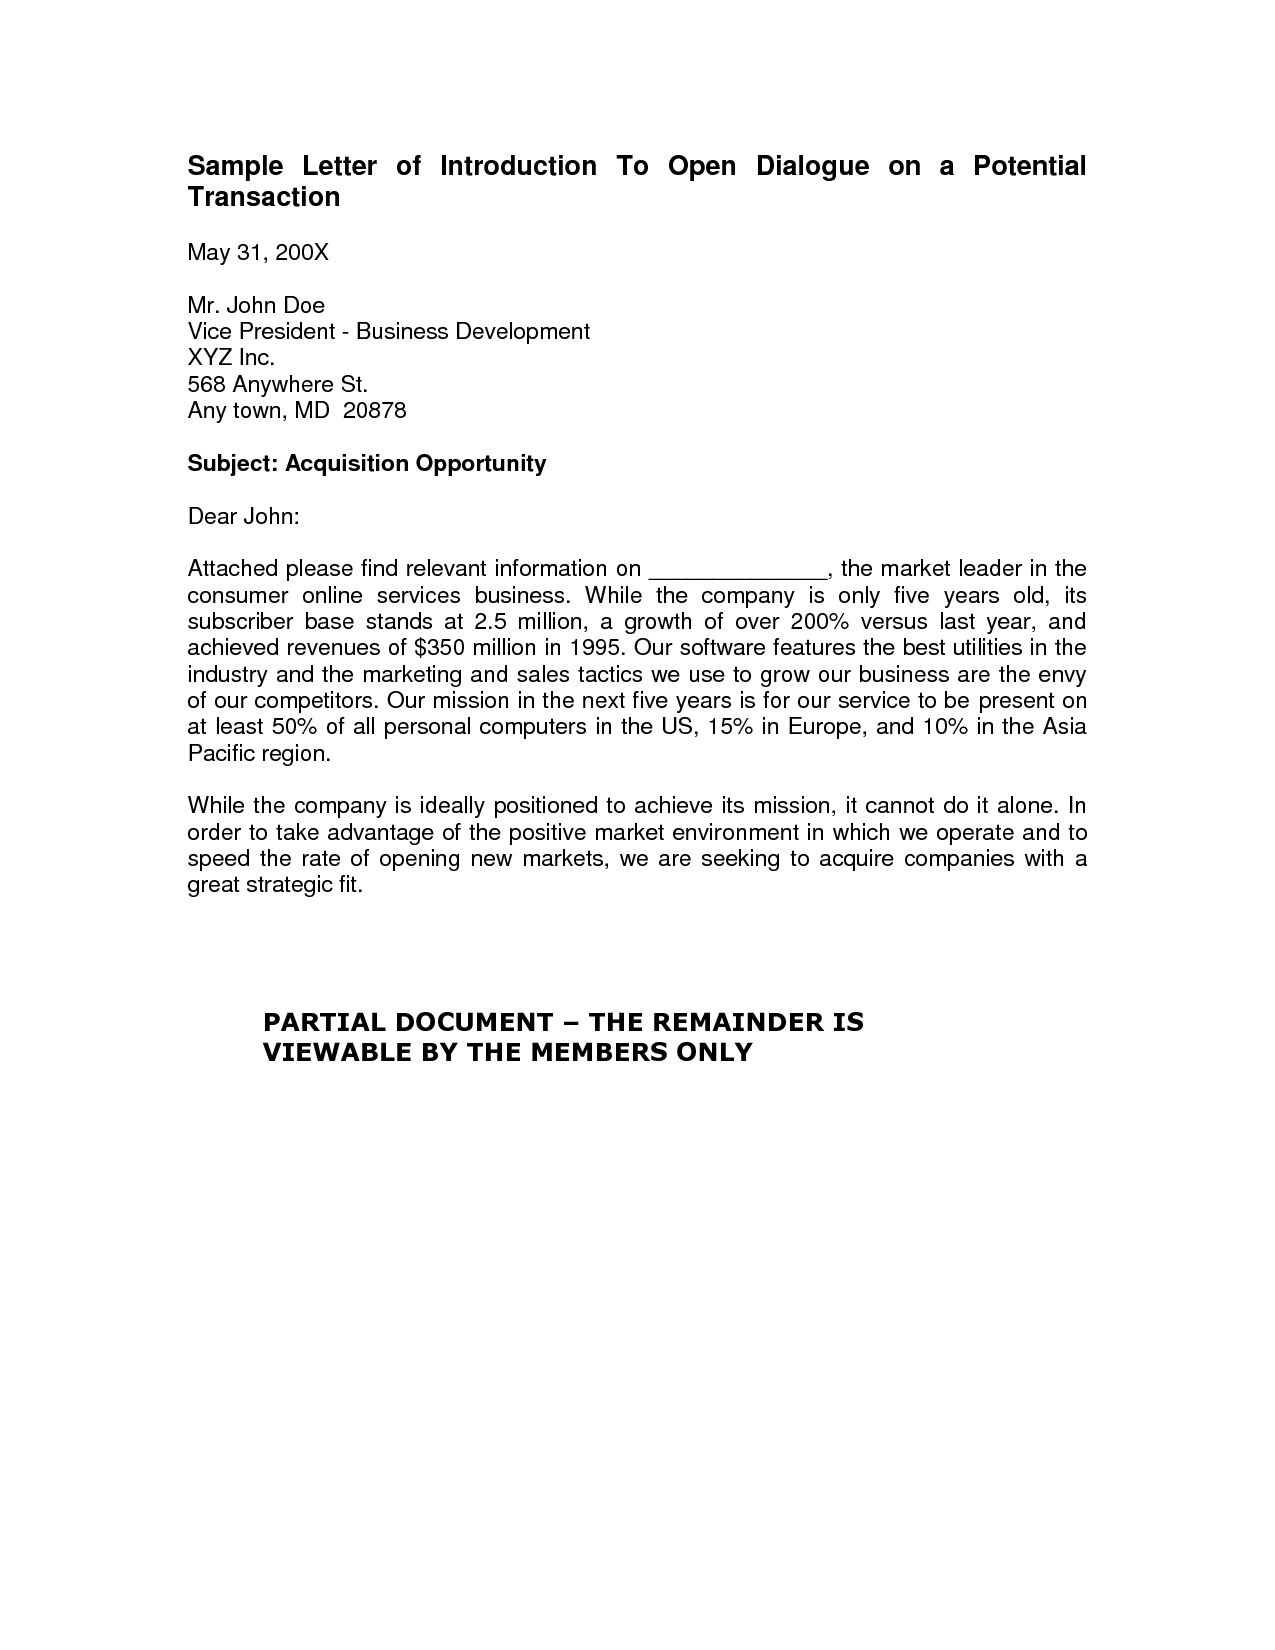 Cleaning Business Introduction Letter Template - Business to Business Introduction Letter Template Business